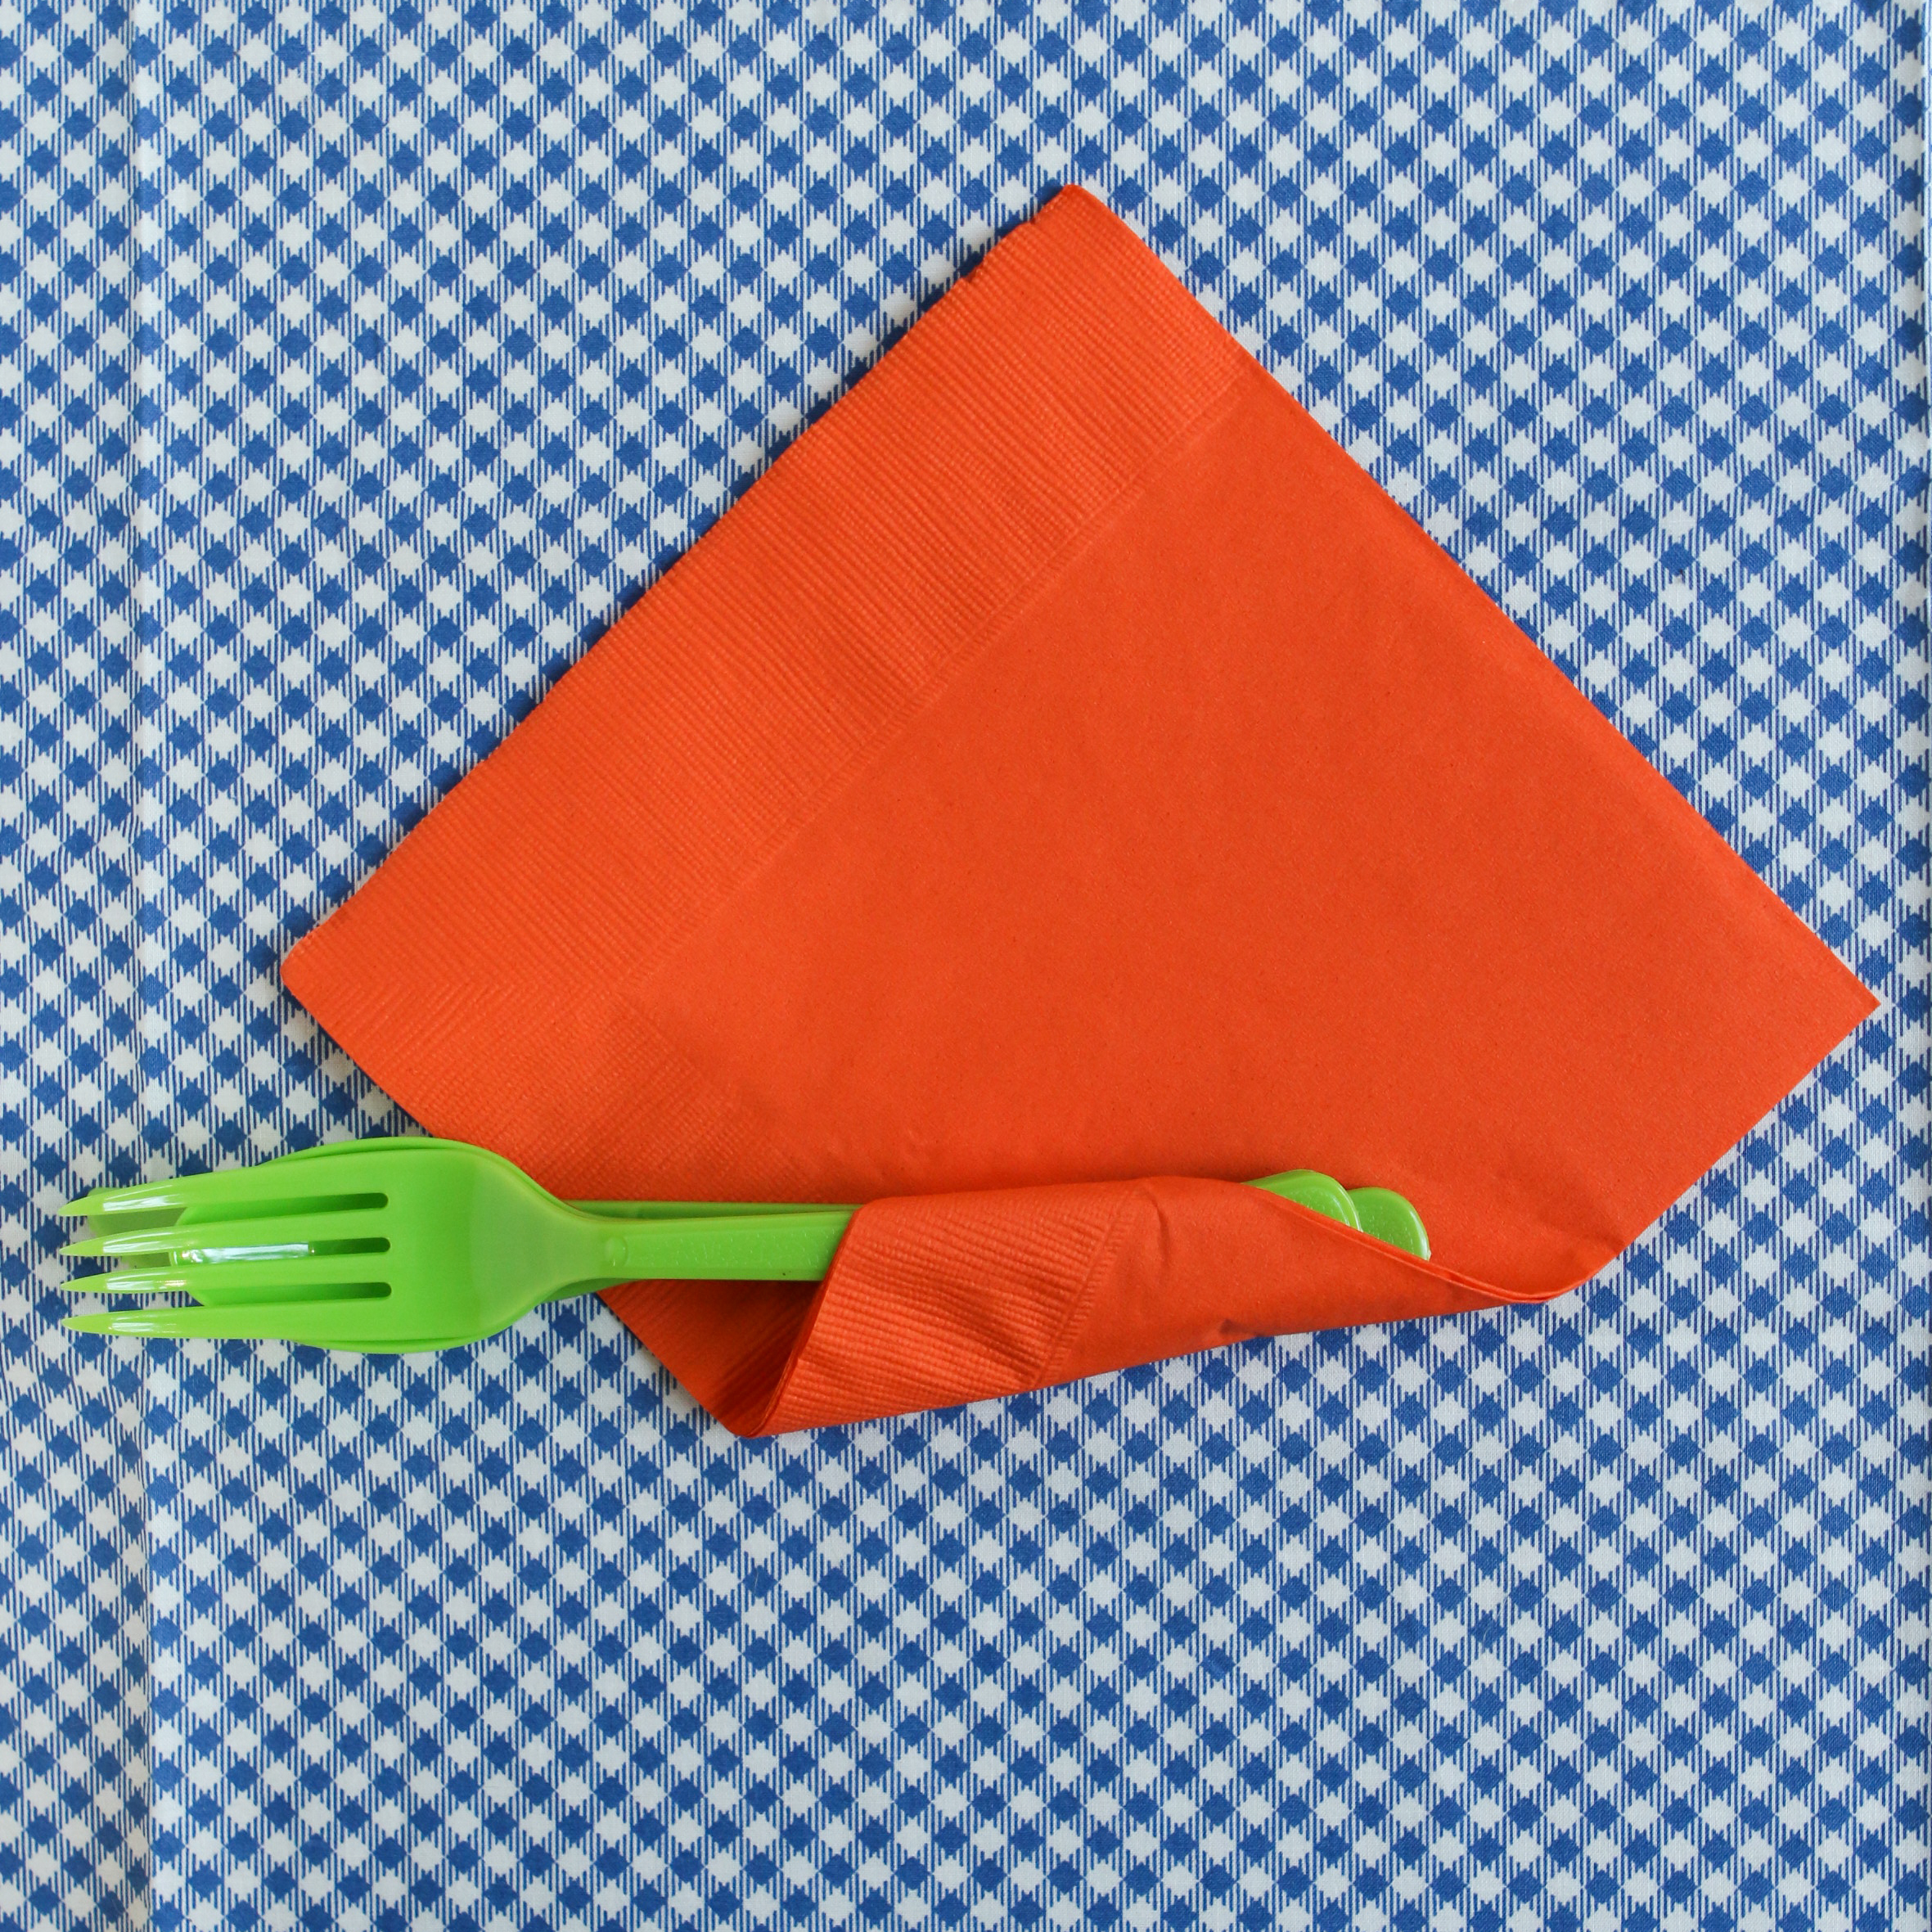 Springtime Carrot Cutlery Thirsty For Tea